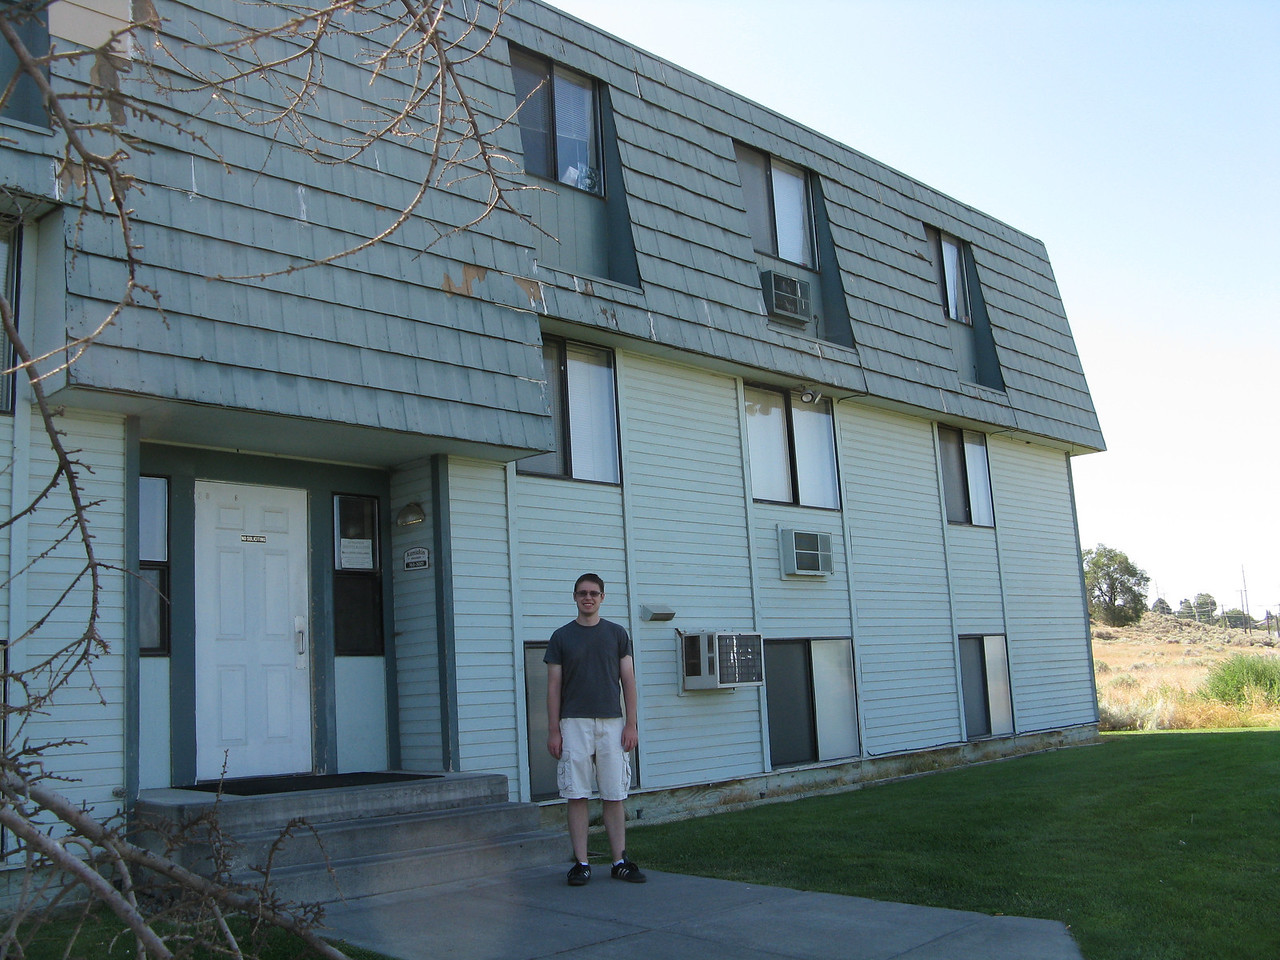 We arrived in Moses Lake about 3:30 p.m. on Tuesday, August 7.  It was 102 degrees that afternoon.  We sweated a lot as we unloaded the van.  Kevin is standing in front of his new apartment building in Moses Lake.